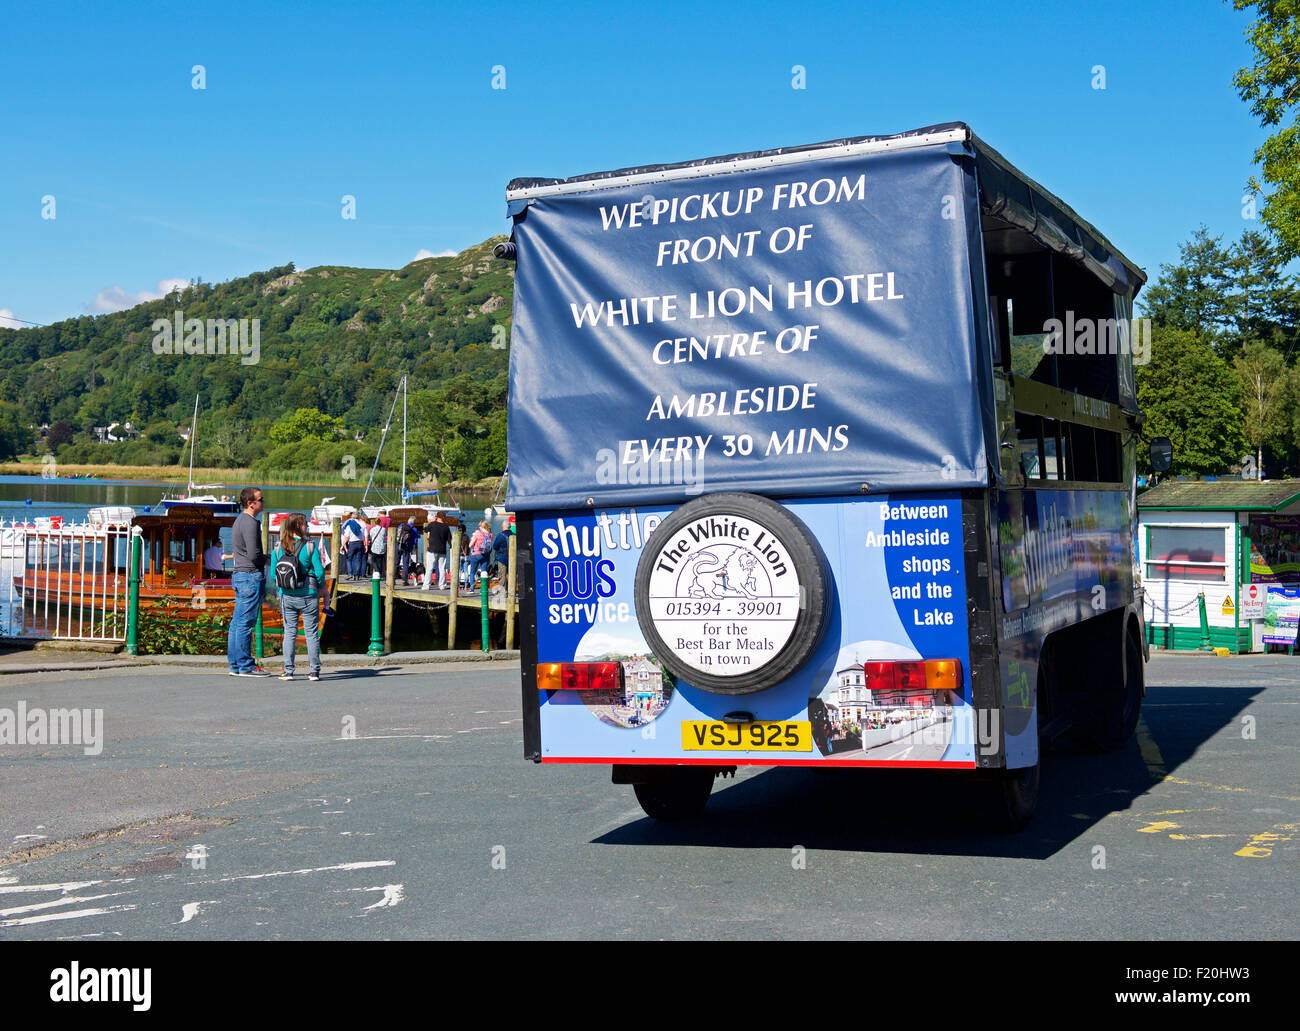 Shuttle bus parked at Waterhead, on Lake Windermere, Lake District National Park, Cumbria, England UK - Stock Image